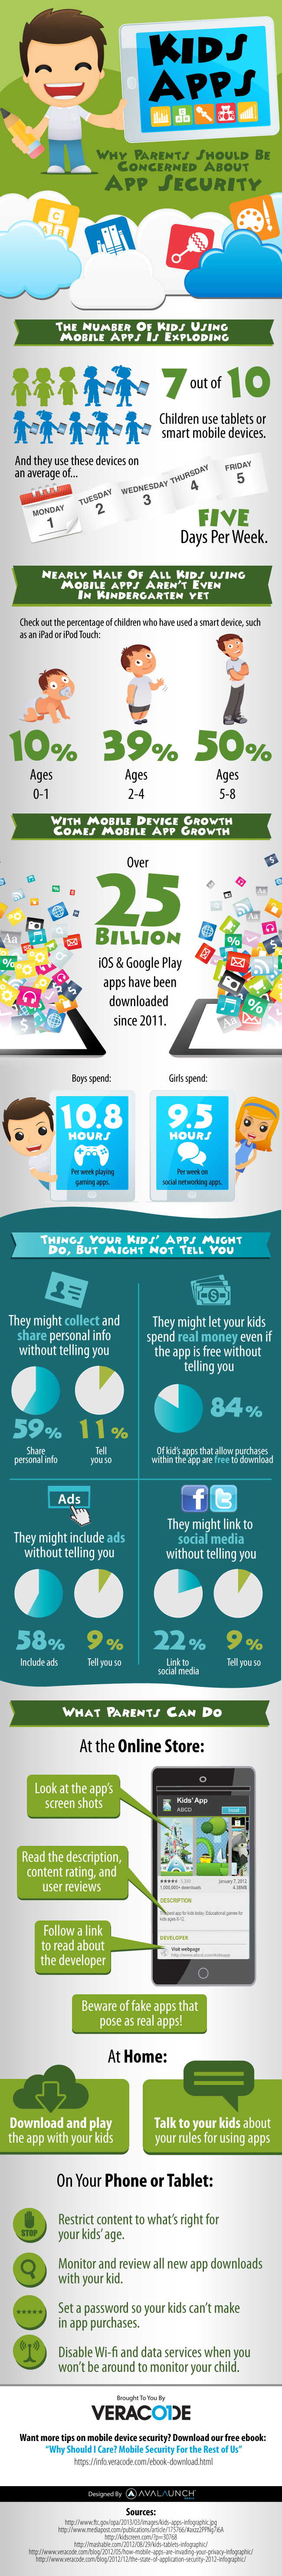 Kids Apps: Why Parents Should Be Concerned About App Security [Infographic]